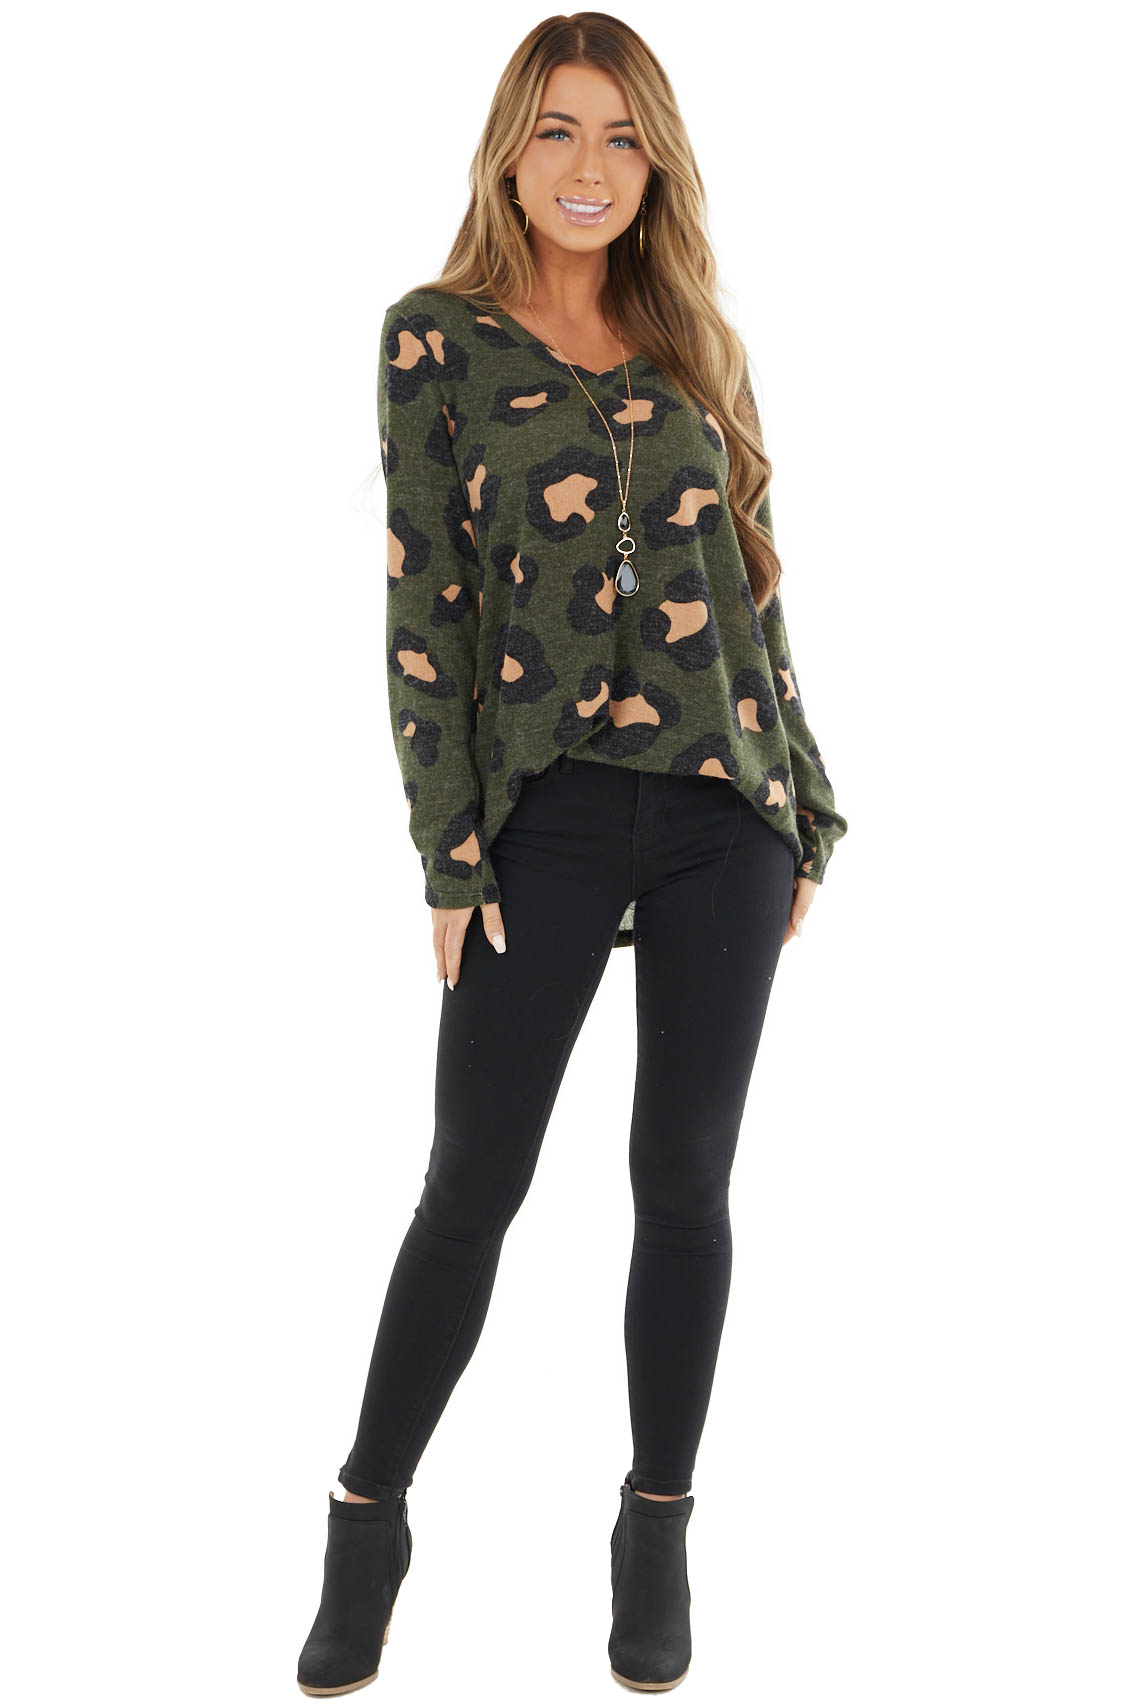 Olive Leopard Print Fuzzy V Neck Top with Long Sleeves